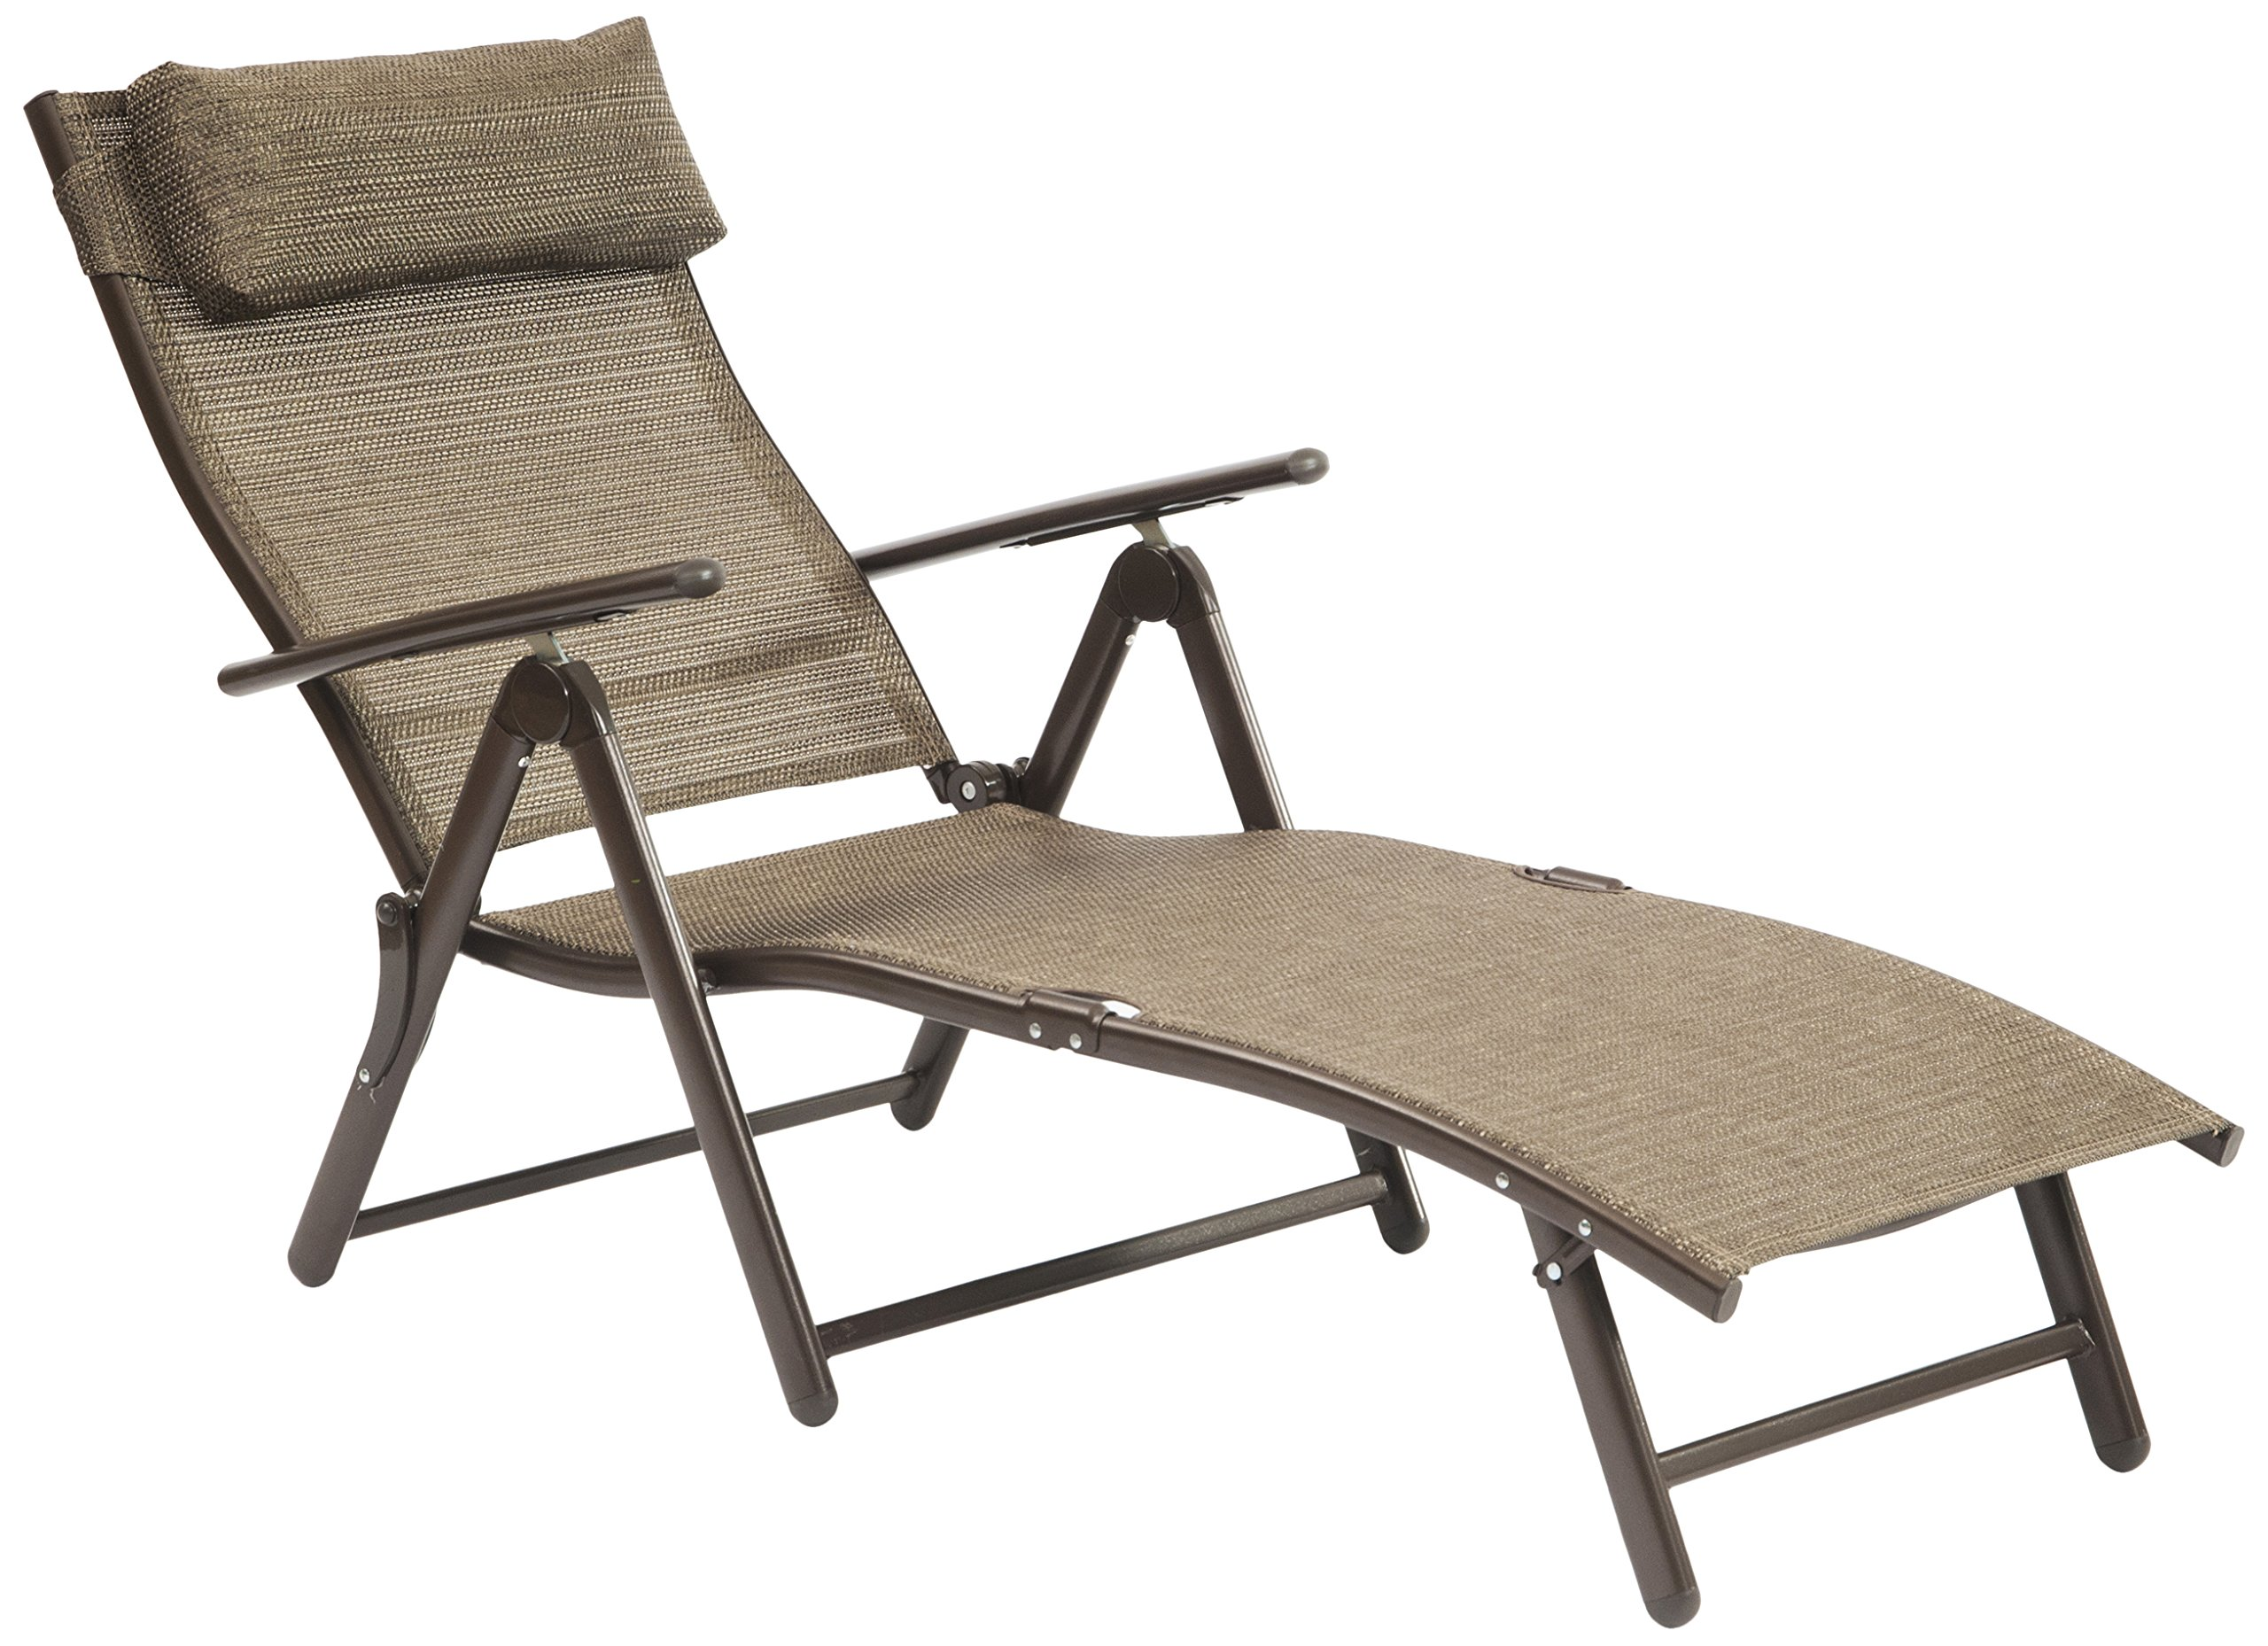 SunTime GF05014USA Metal Sunlounger Outdoor Lounge Chair, Bronze